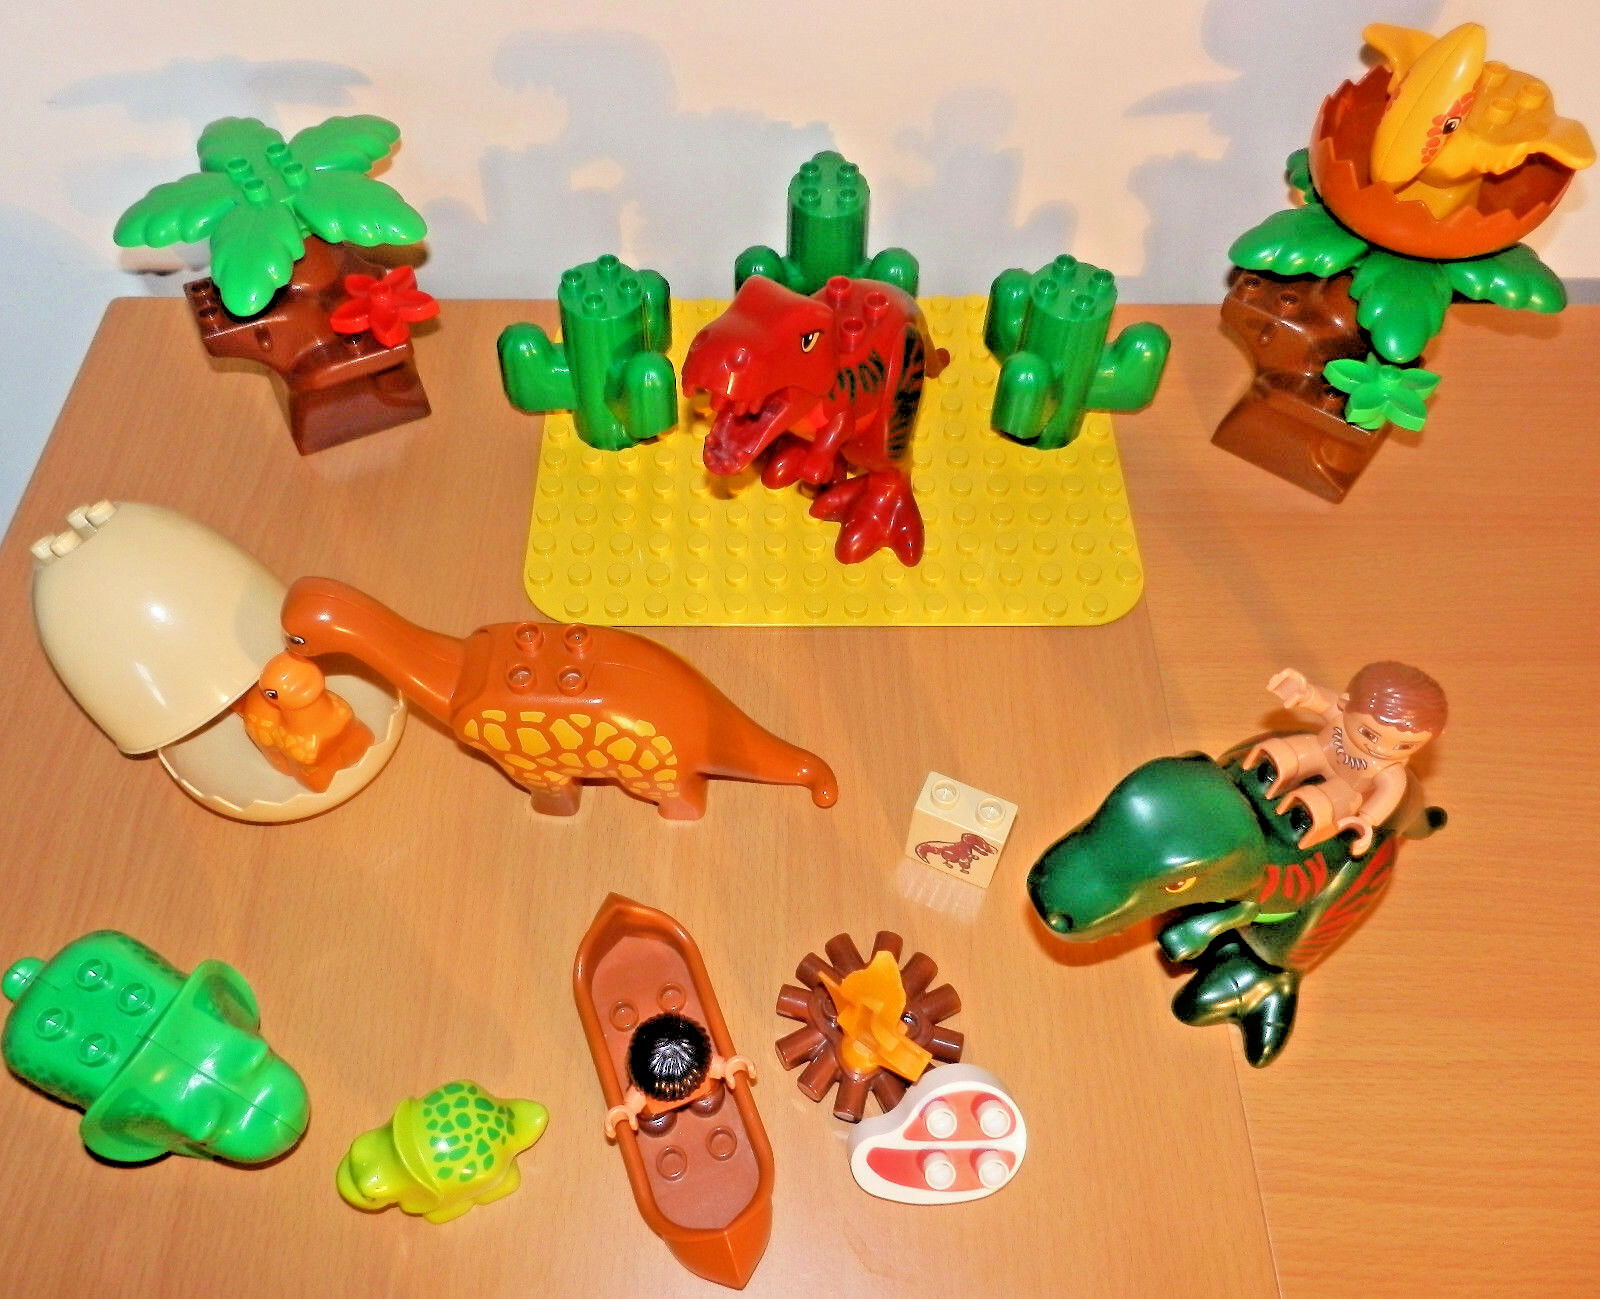 LEGO DUPLO Dino Valley Bundle - Dinosaurs World Trap Cavemen T-Rex Jurassic Park